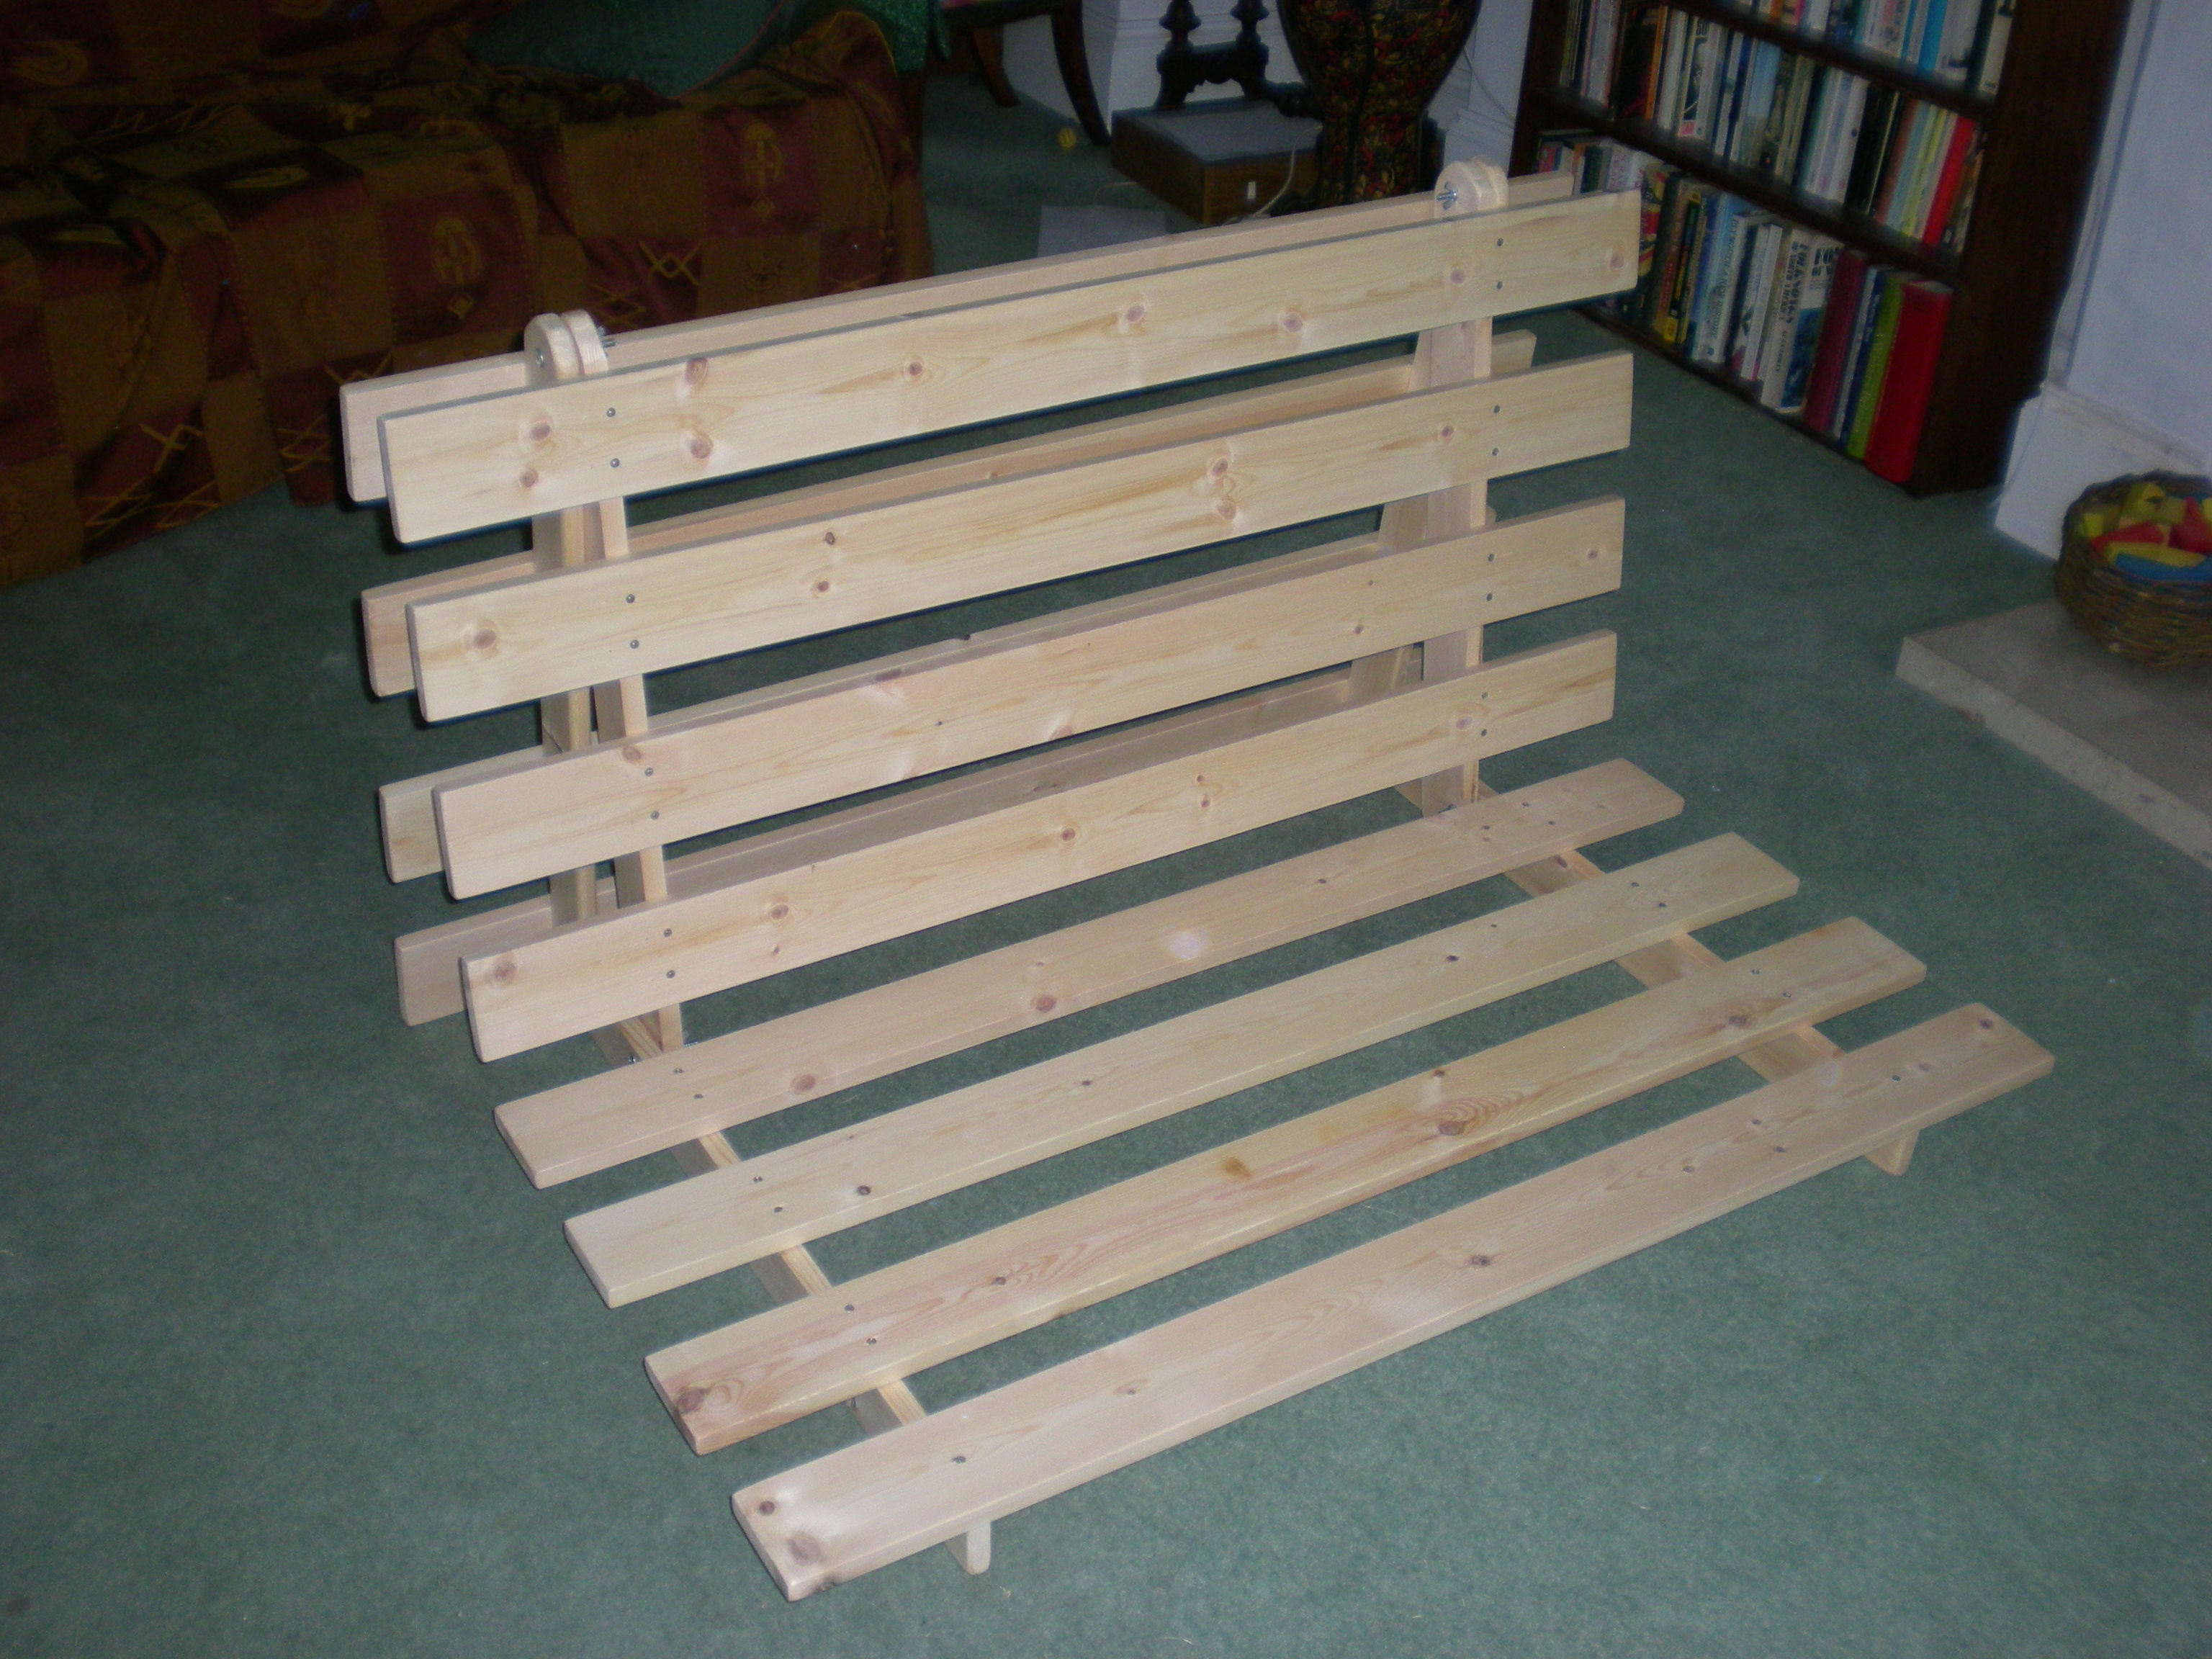 How To Make A Fold Out Sofa Futon Bed Frame 14 Steps With Pictures Instructables